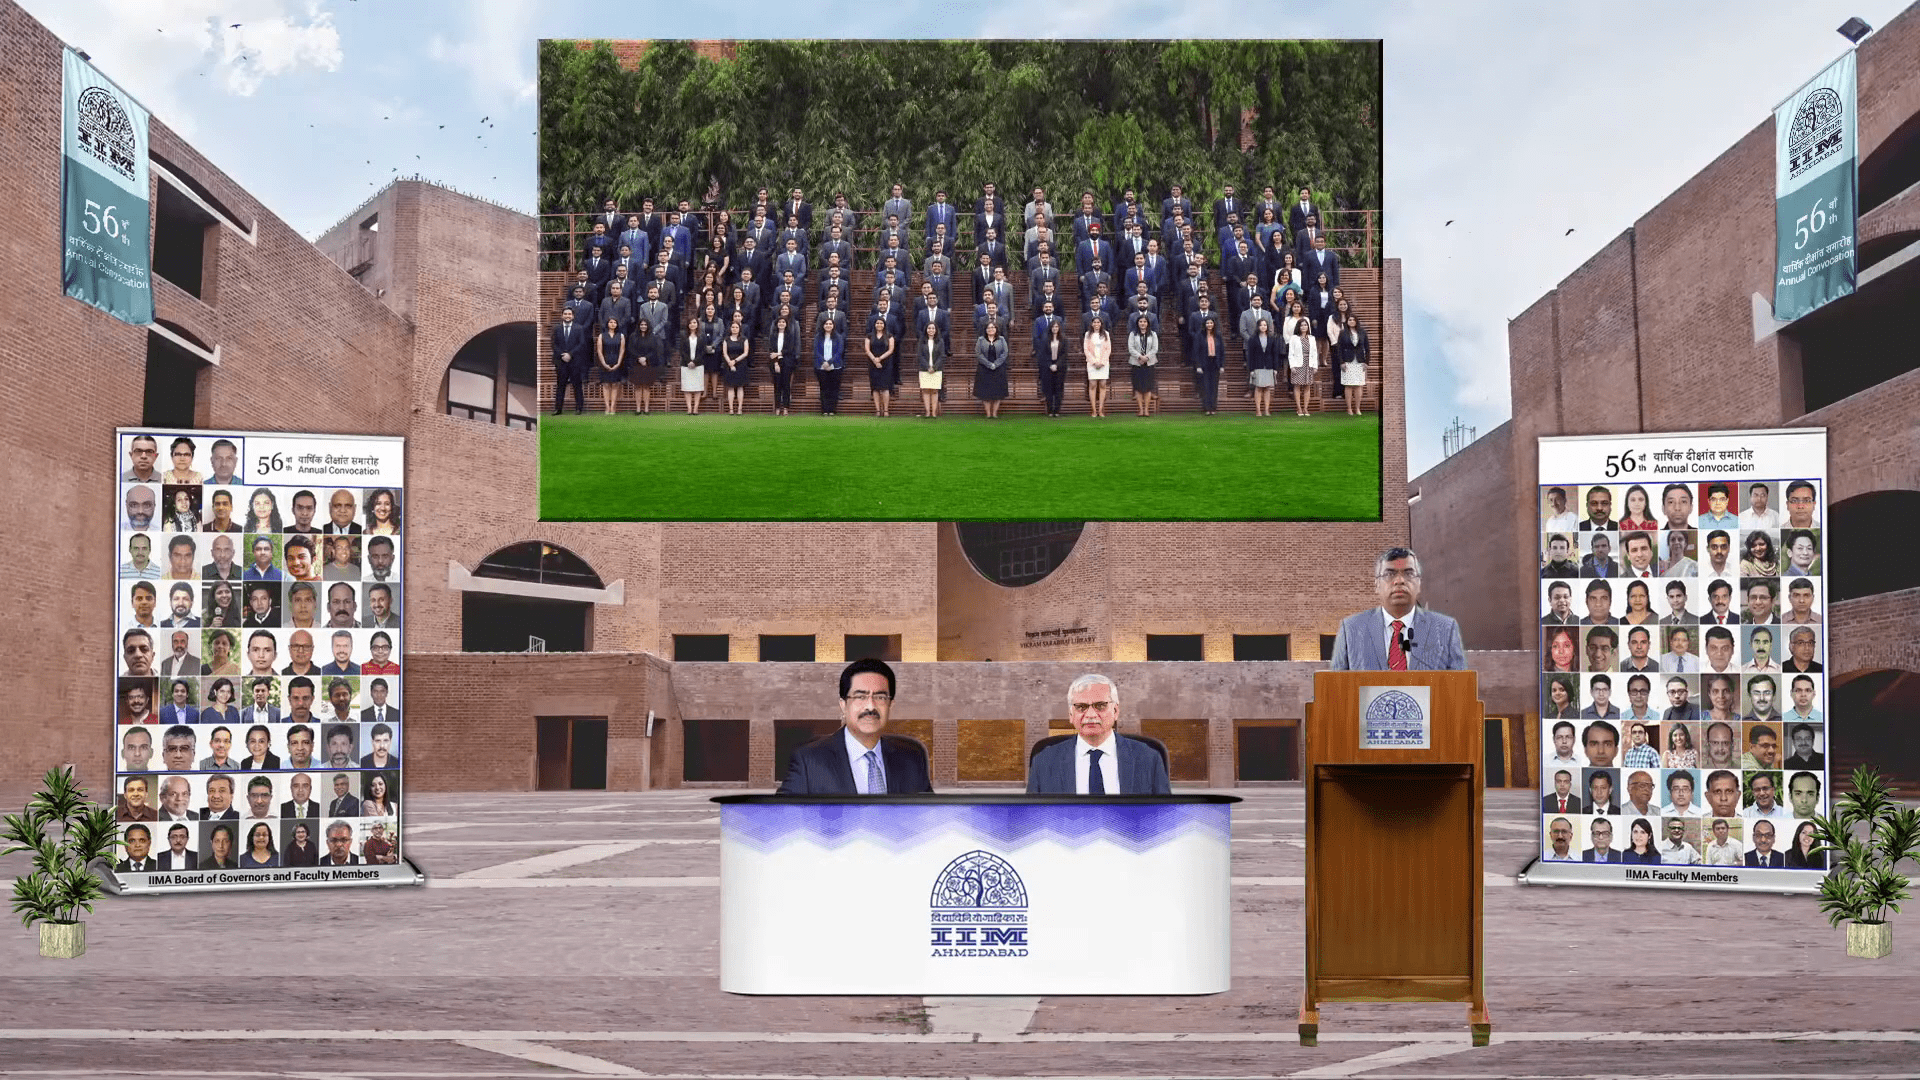 More than 600 students of IIM Ahmedabad conferred degrees